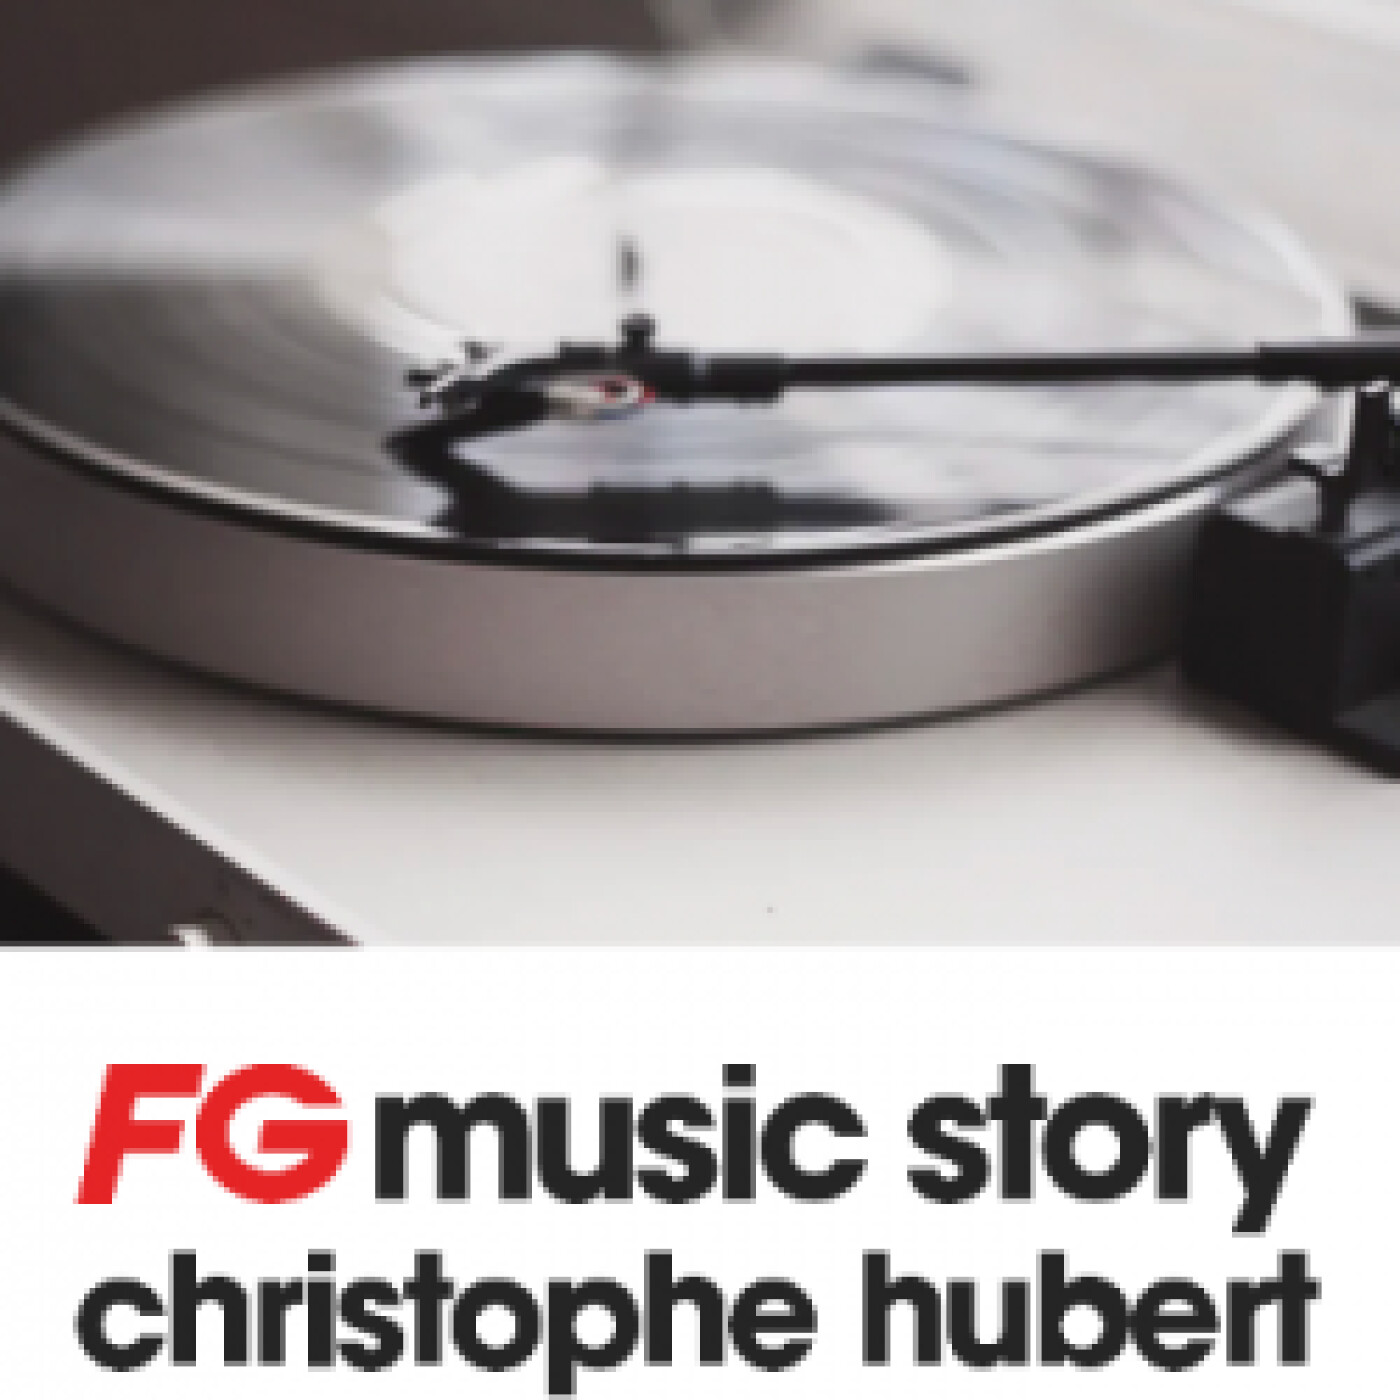 FG MUSIC STORY : DISCIPLES